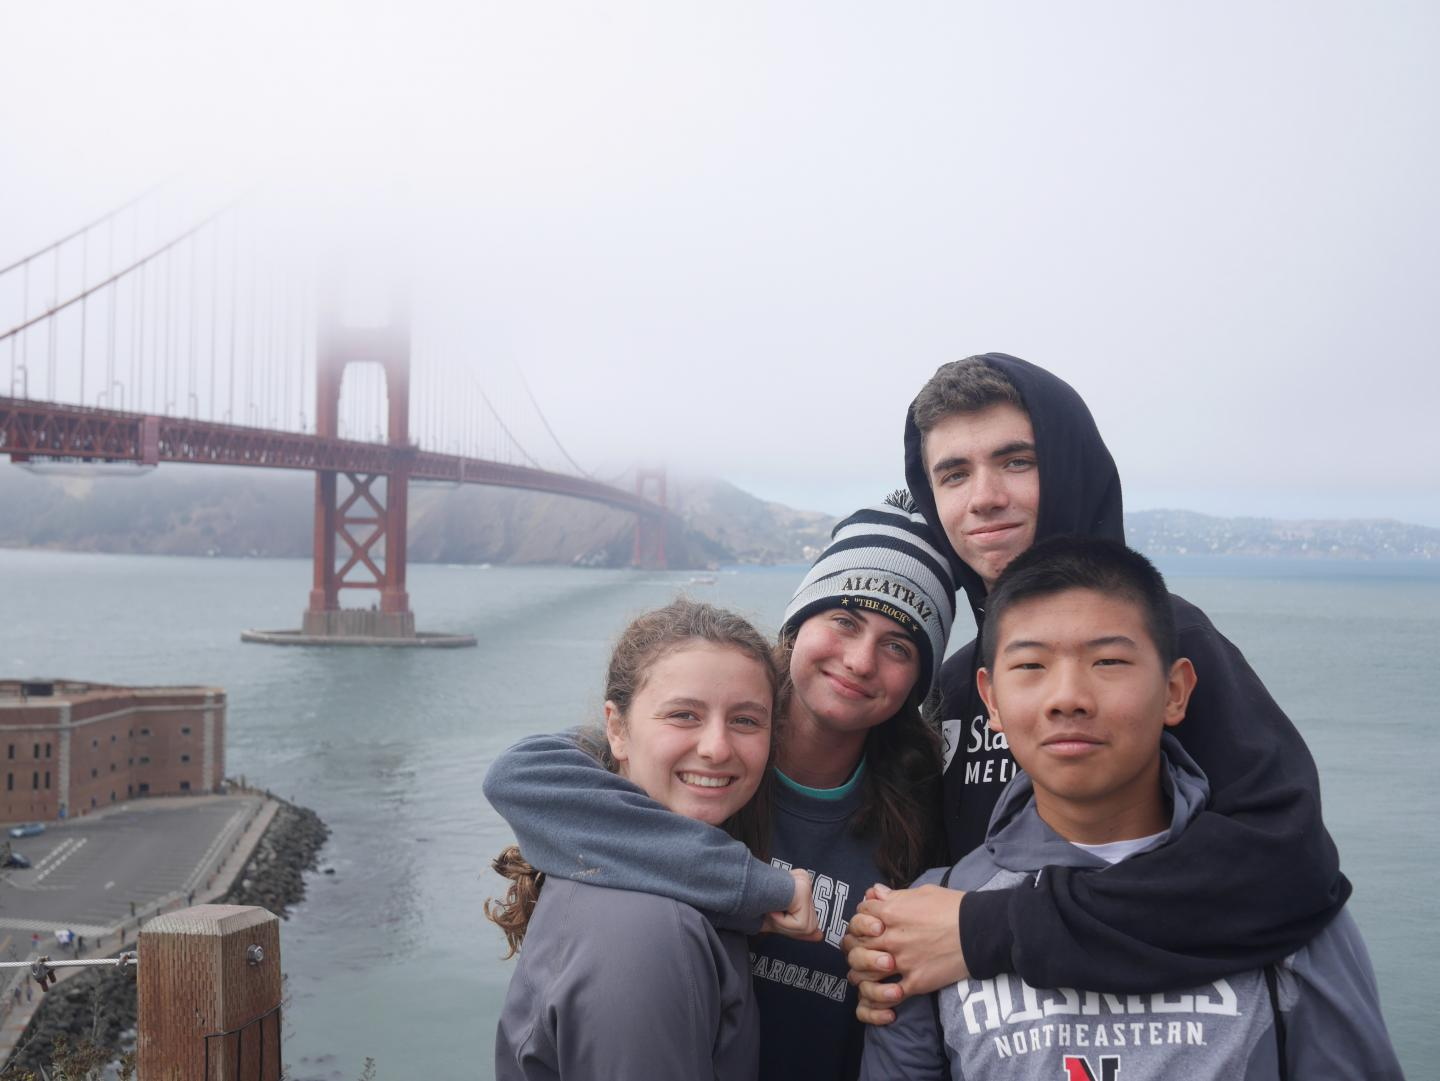 Friends pose for a photo in front of the Golden Gate Bridge on their summer teen tour of San Francisco, California.